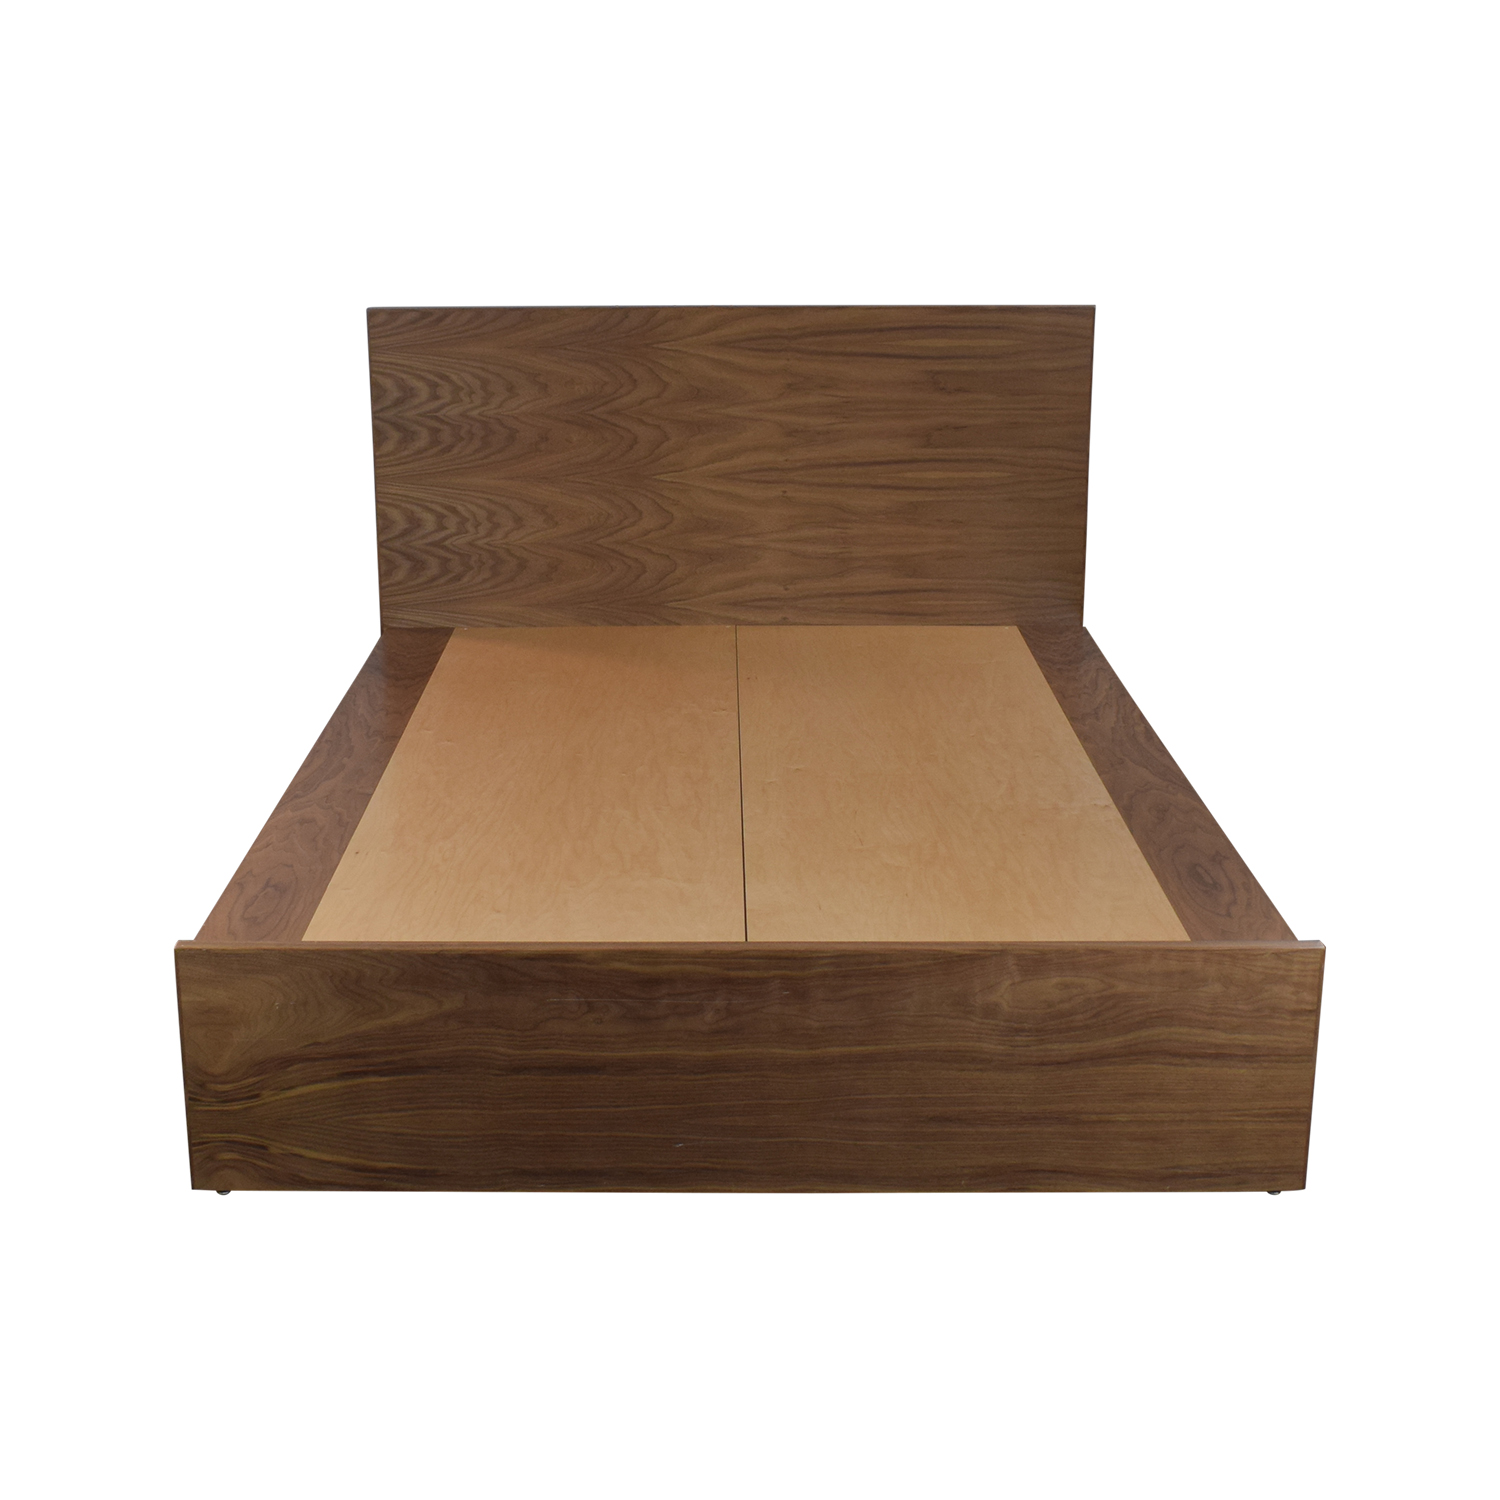 Urbangreen Furniture Thompson Queen Storage Bed Six Drawer with Headboard Urbangreen Furniture